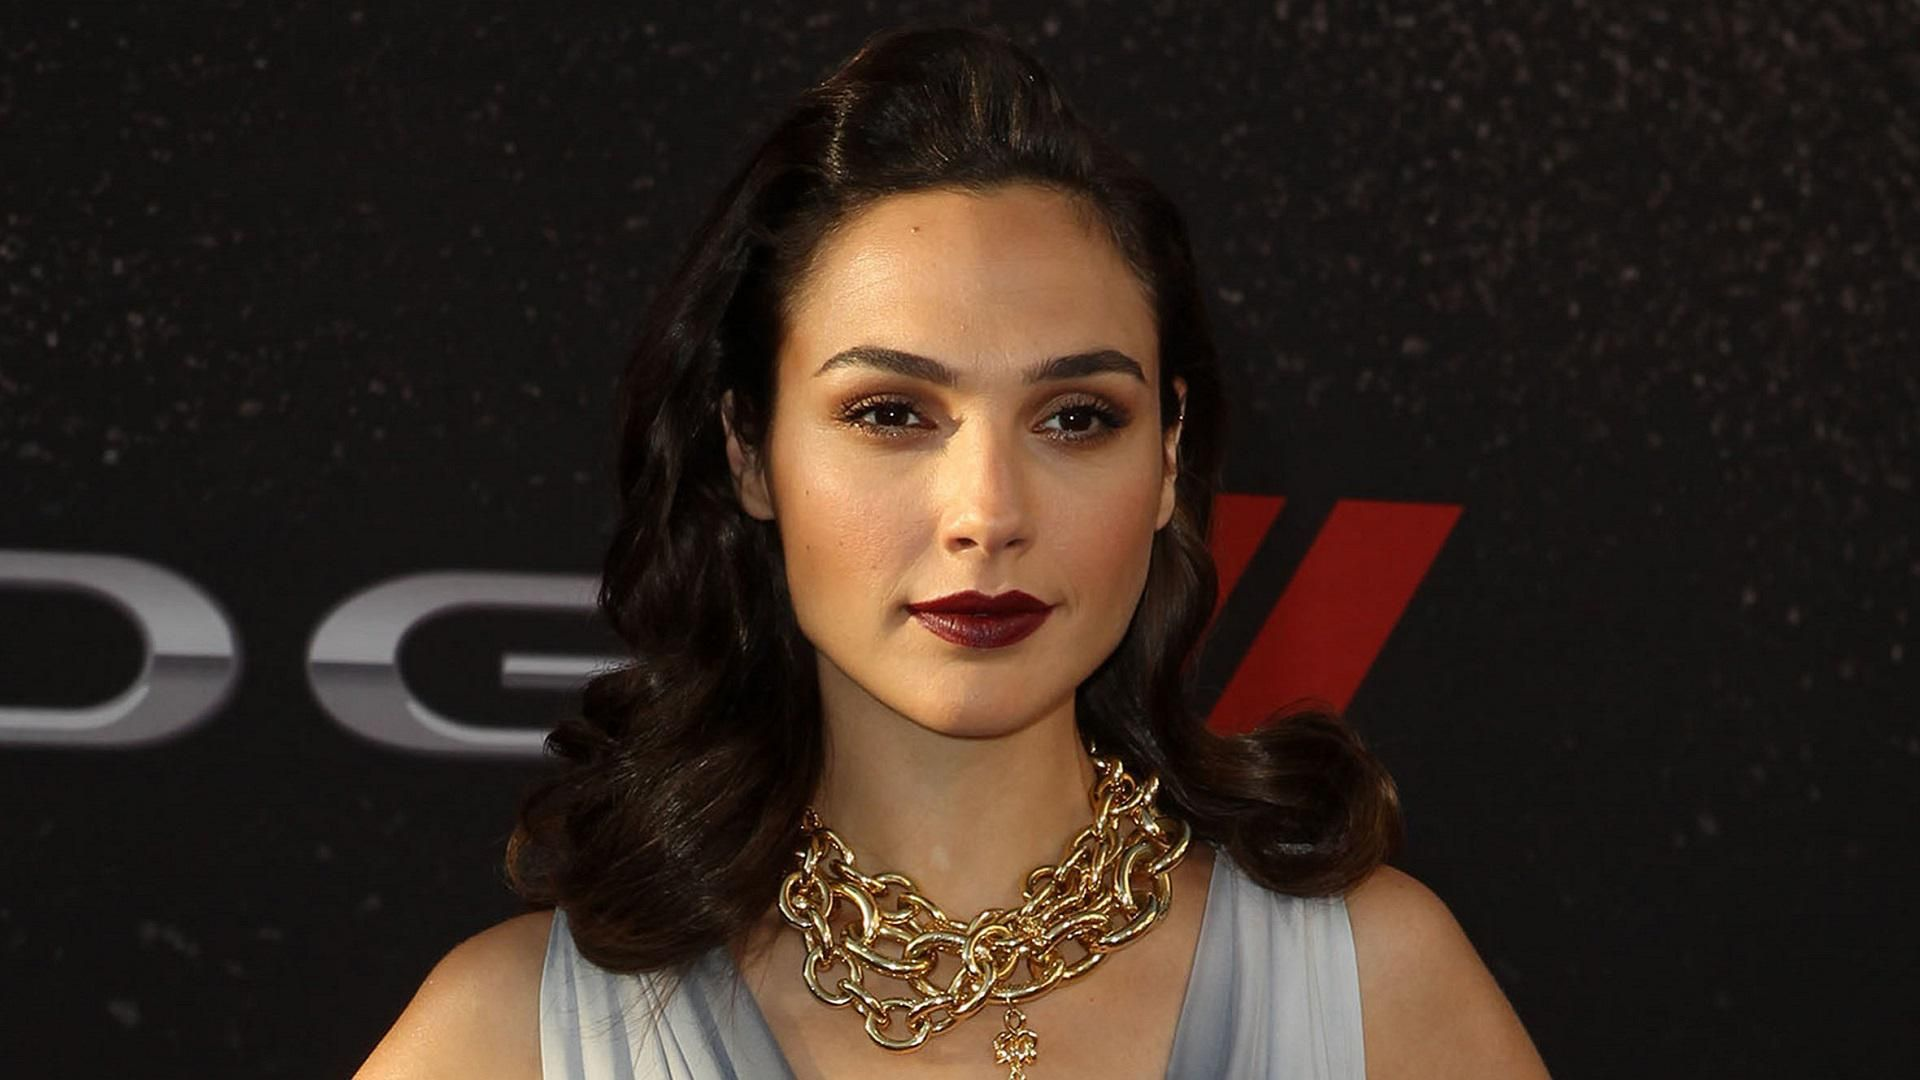 20 Stunning Photos Of Gal Gadot To Get You Ready For